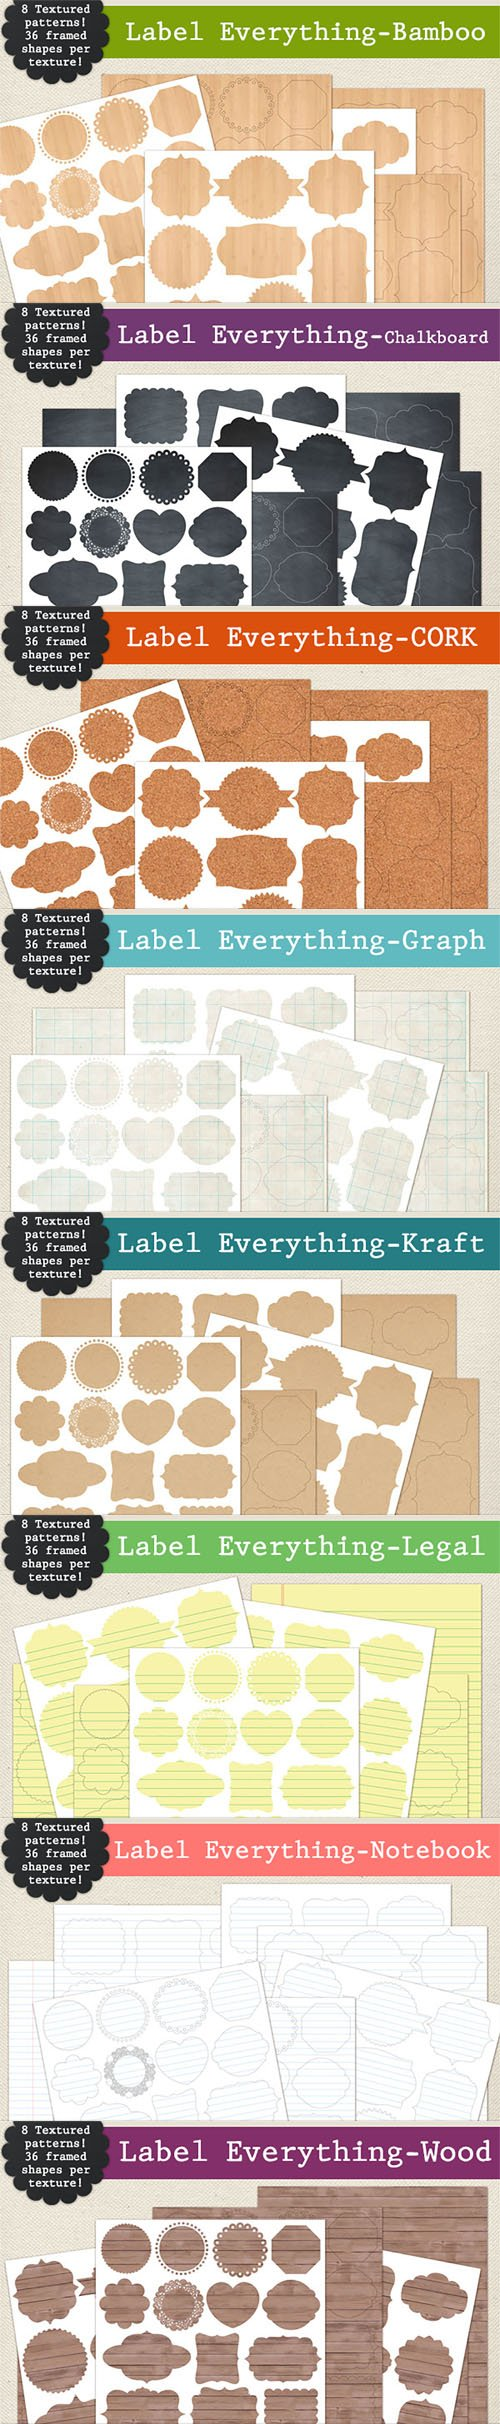 Label Everything Frame (PDF)